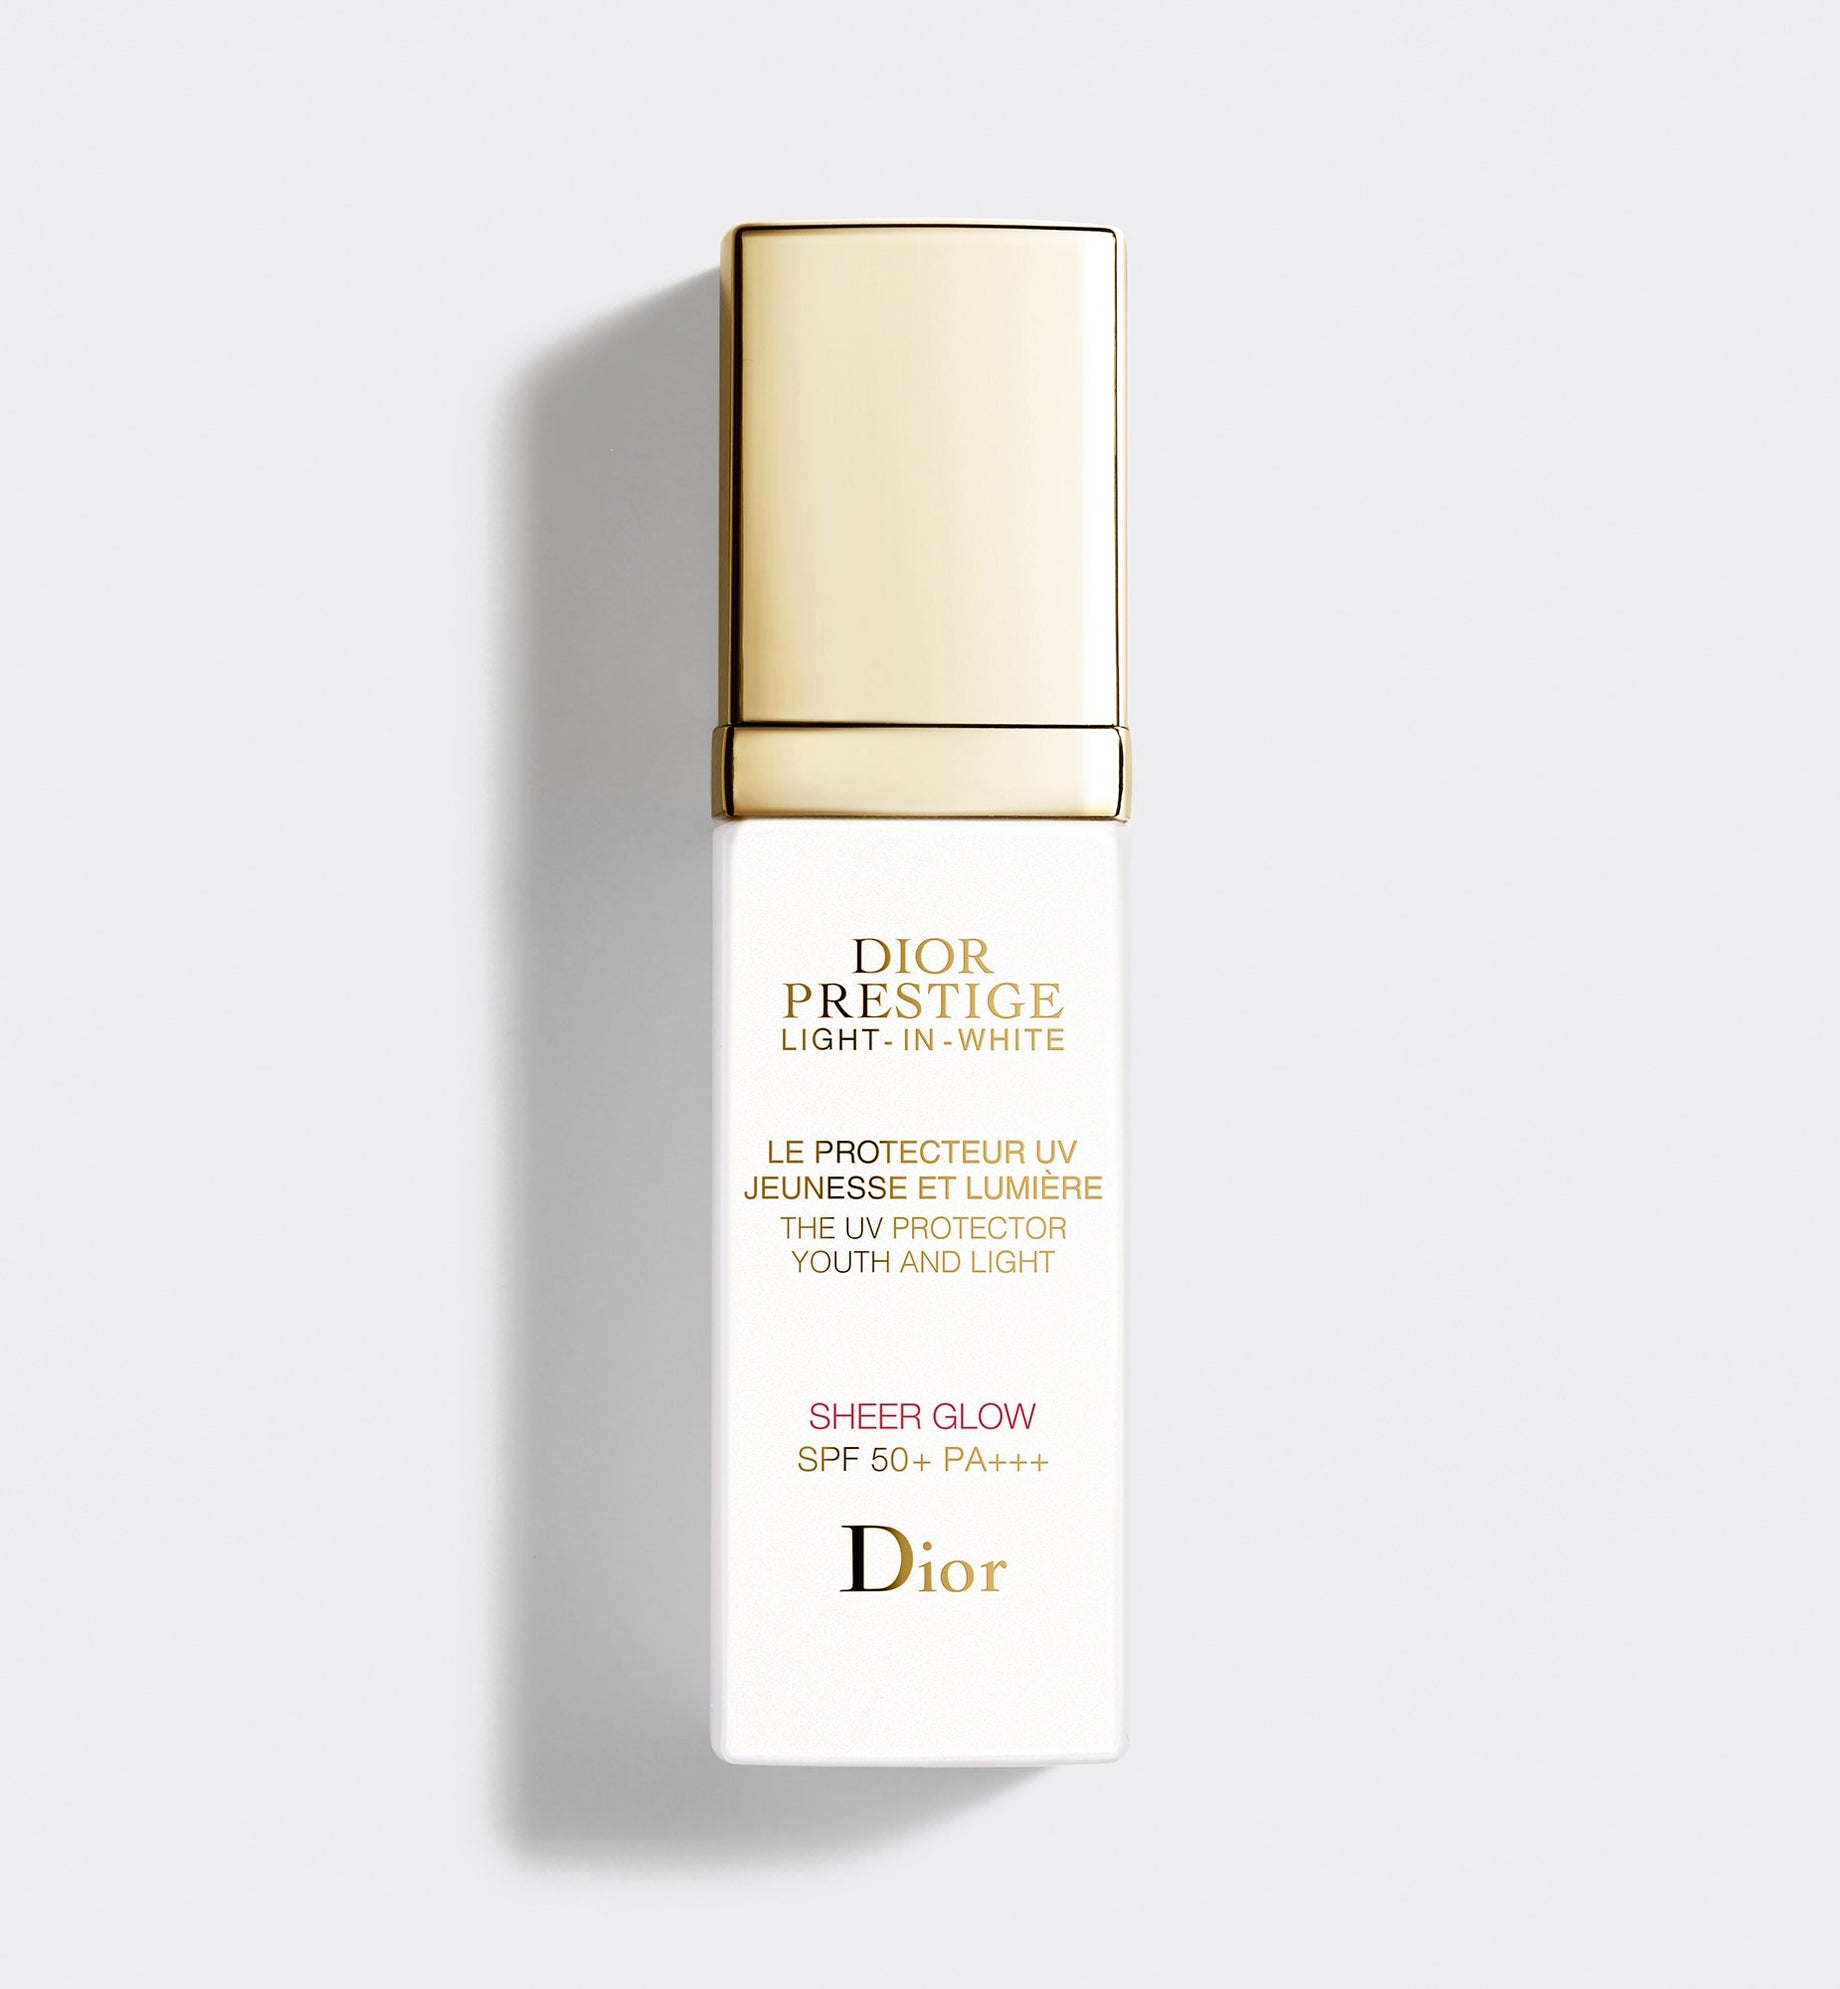 DIOR PRESTIGE LIGHT-IN-WHITE THE UV PROTECTOR YOUTH AND LIGHT